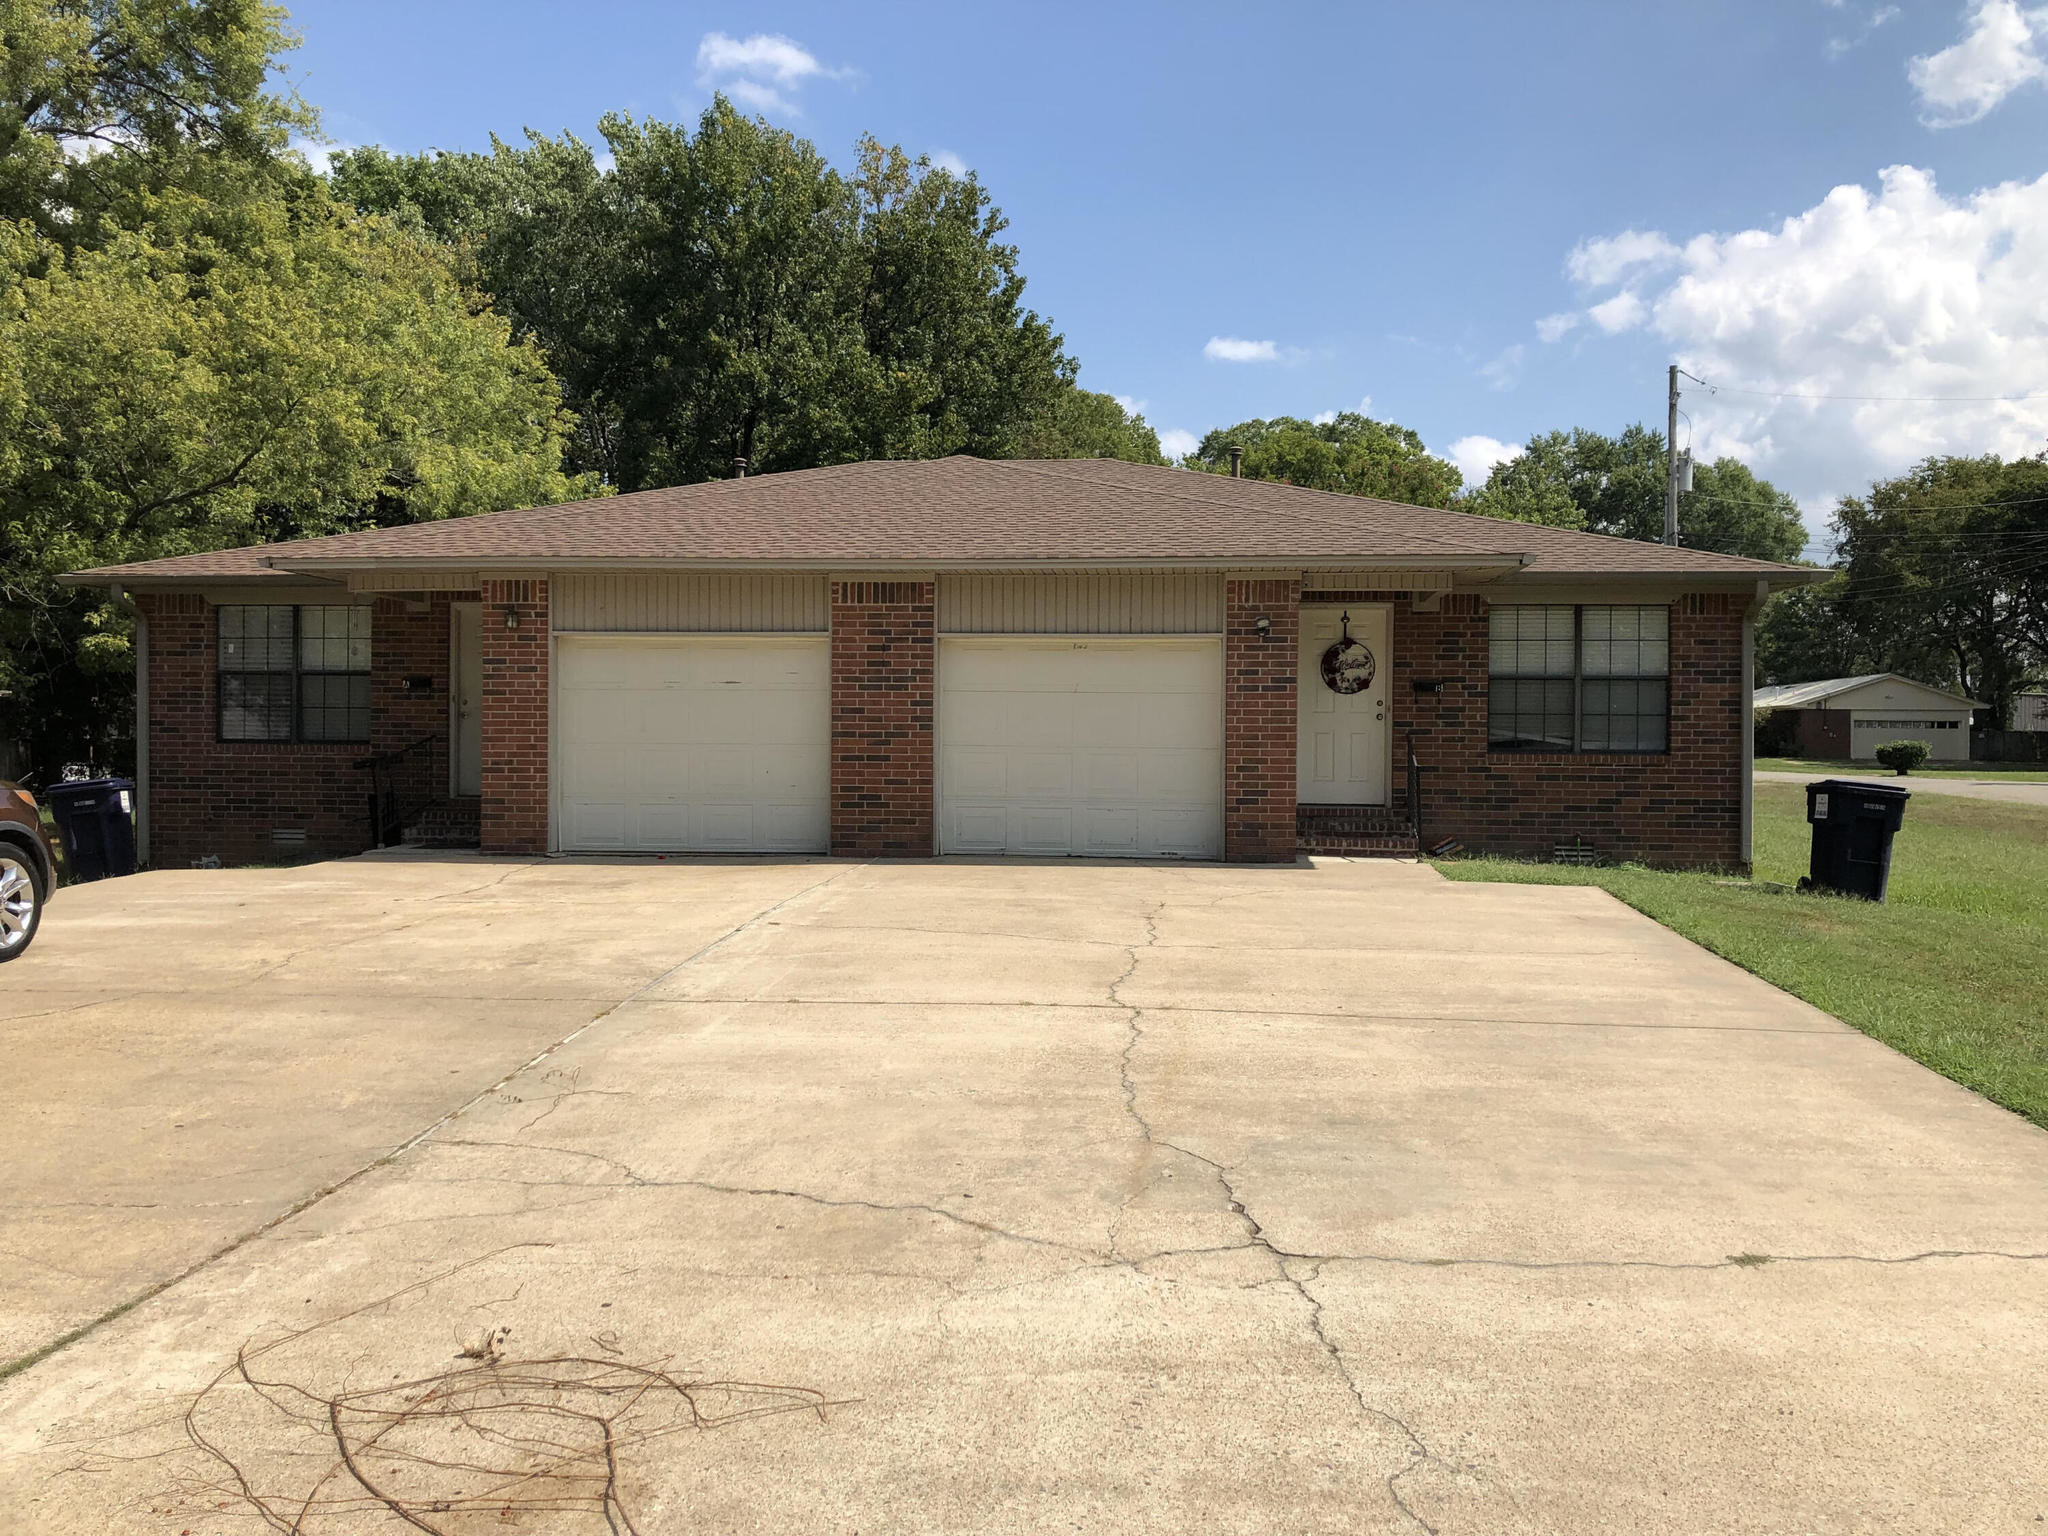 Multi-Family Home In Russellville